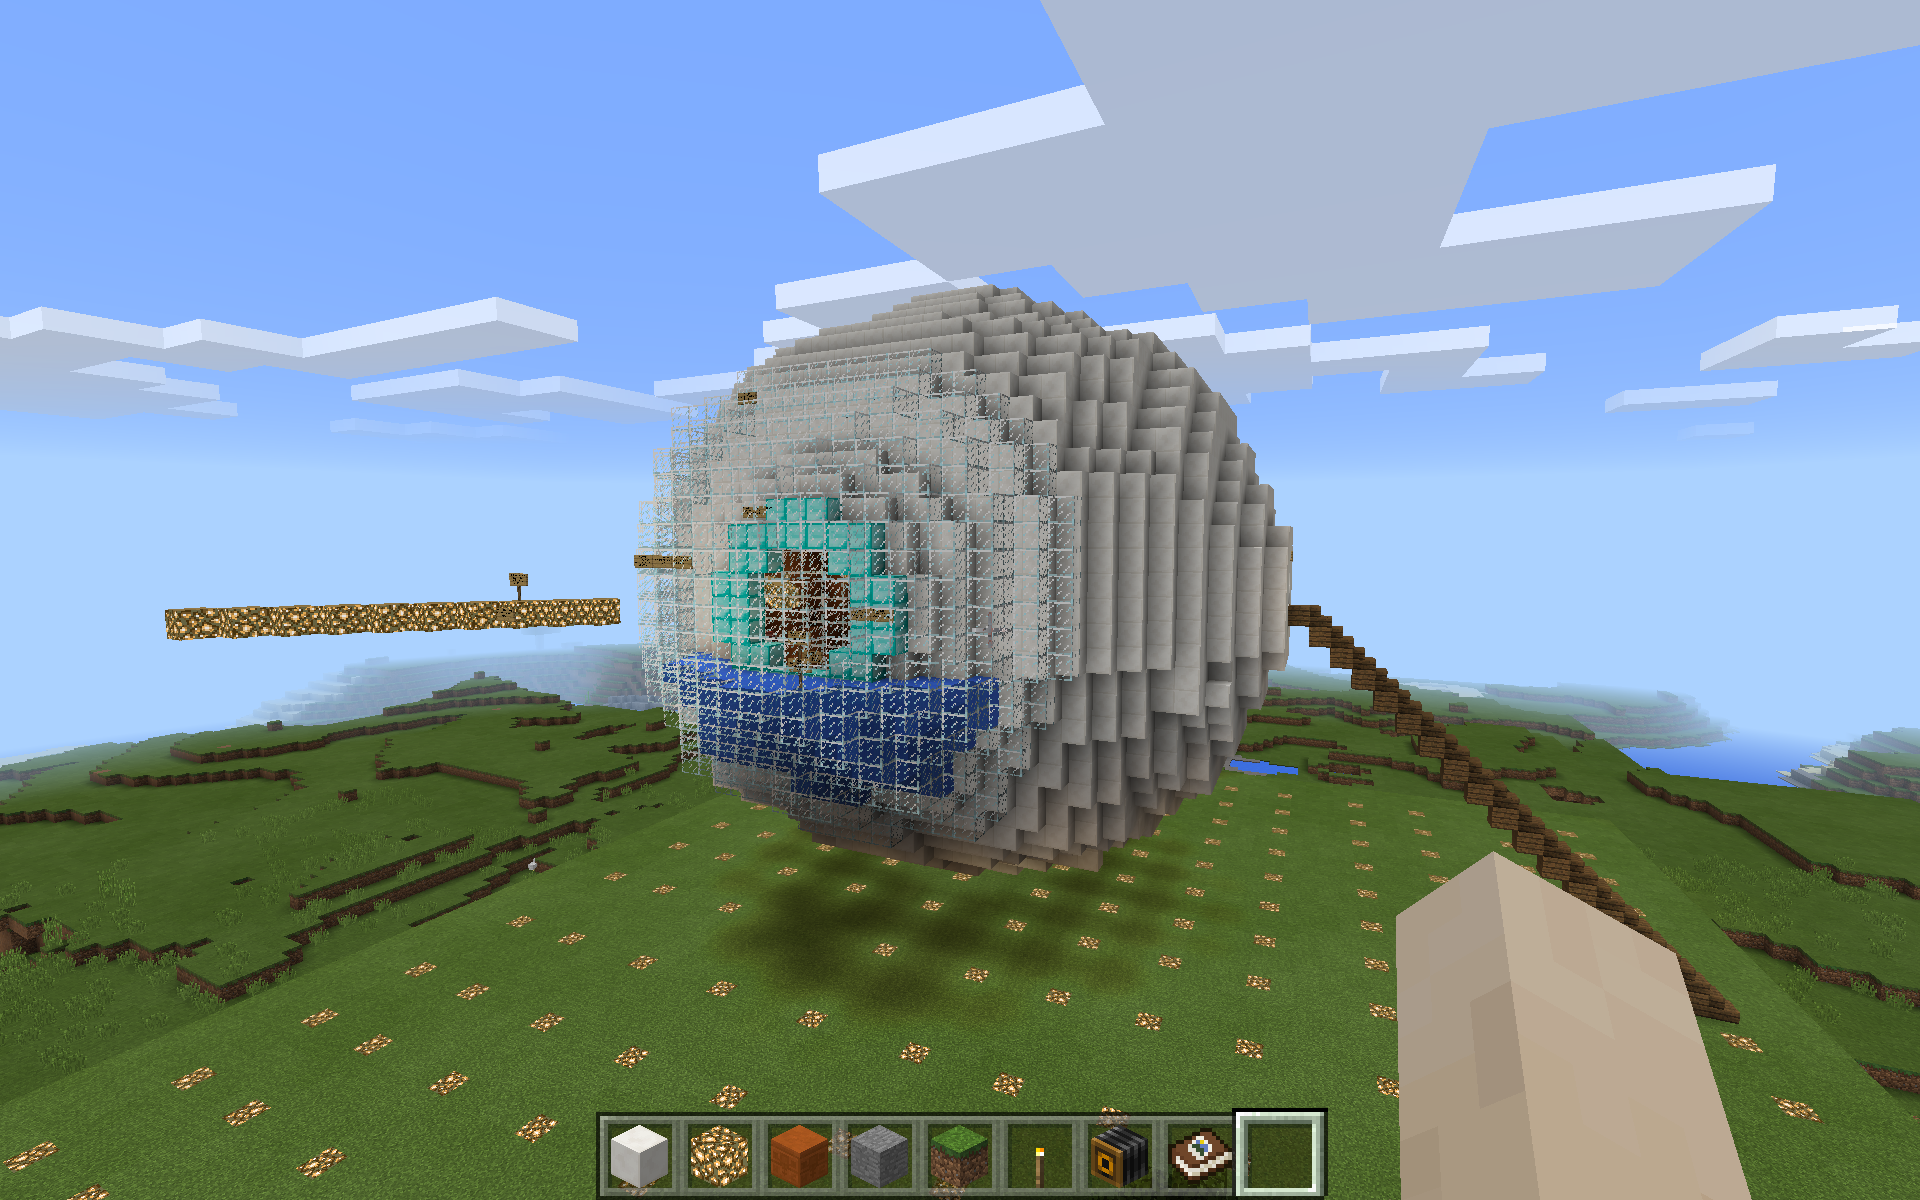 This is an exterior view of the human eye, which becomes a teaching tool through Minecraft: Education Edition.